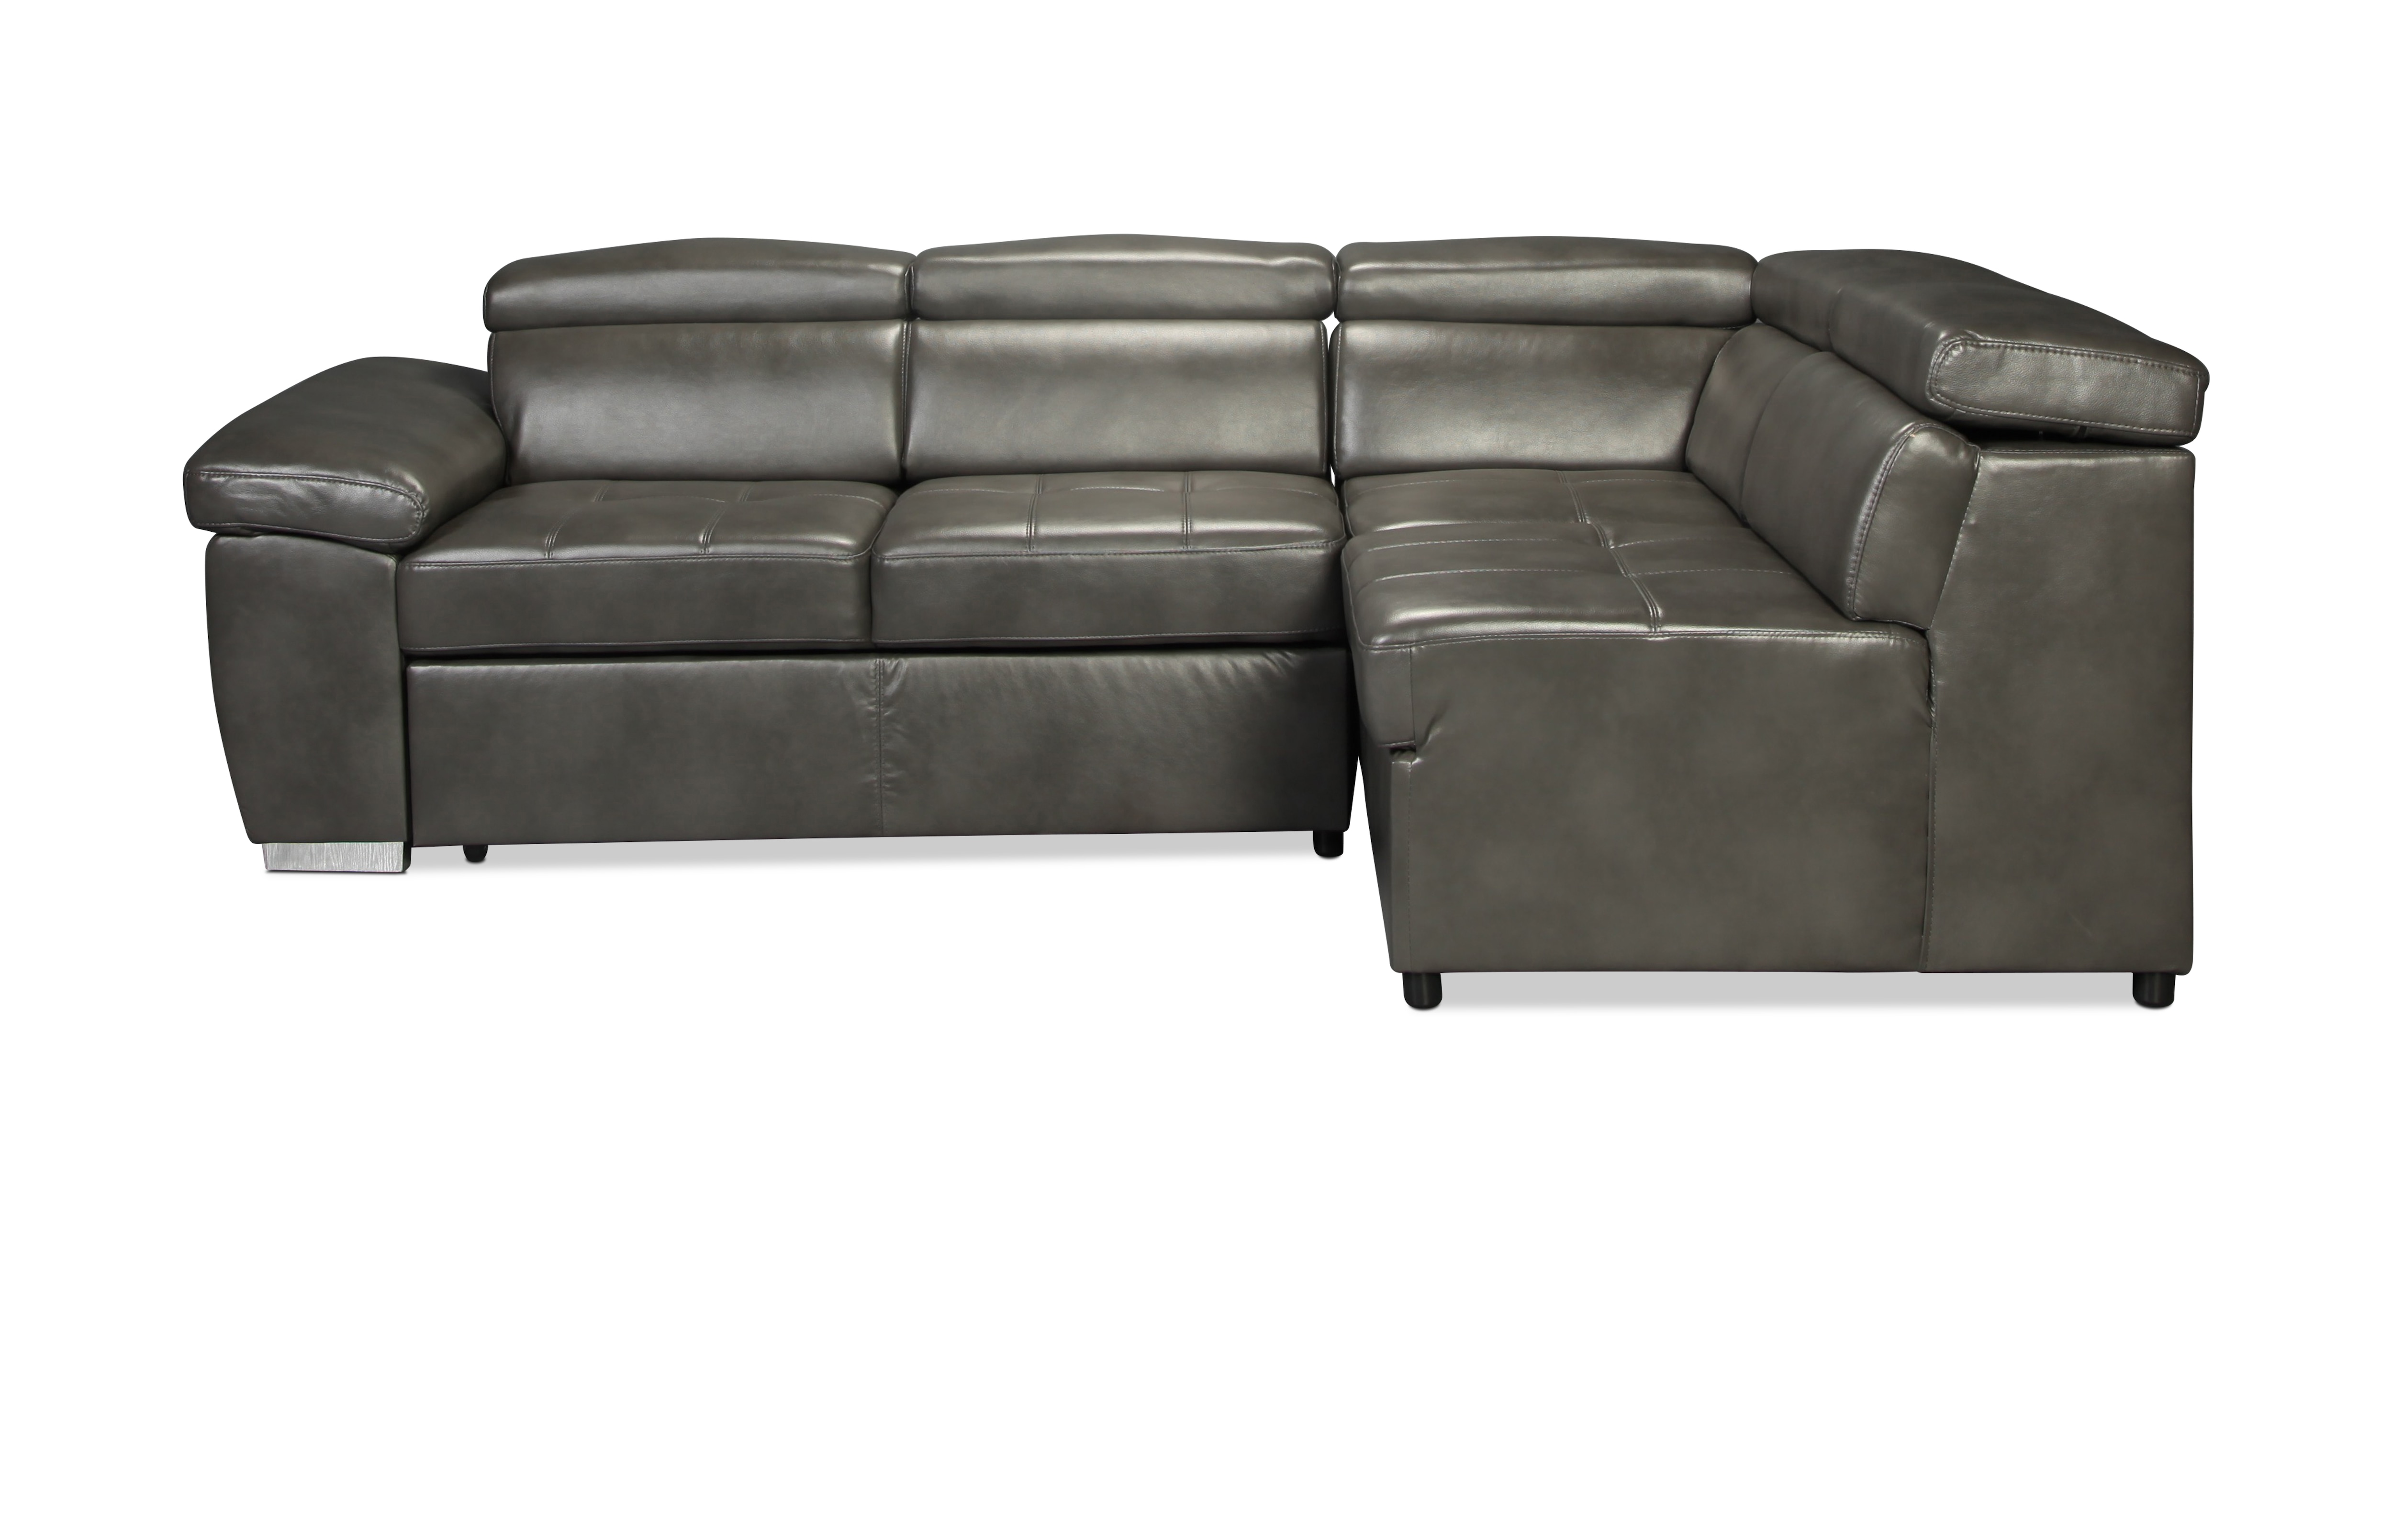 Amedea 2 Piece Sectional - Graphite